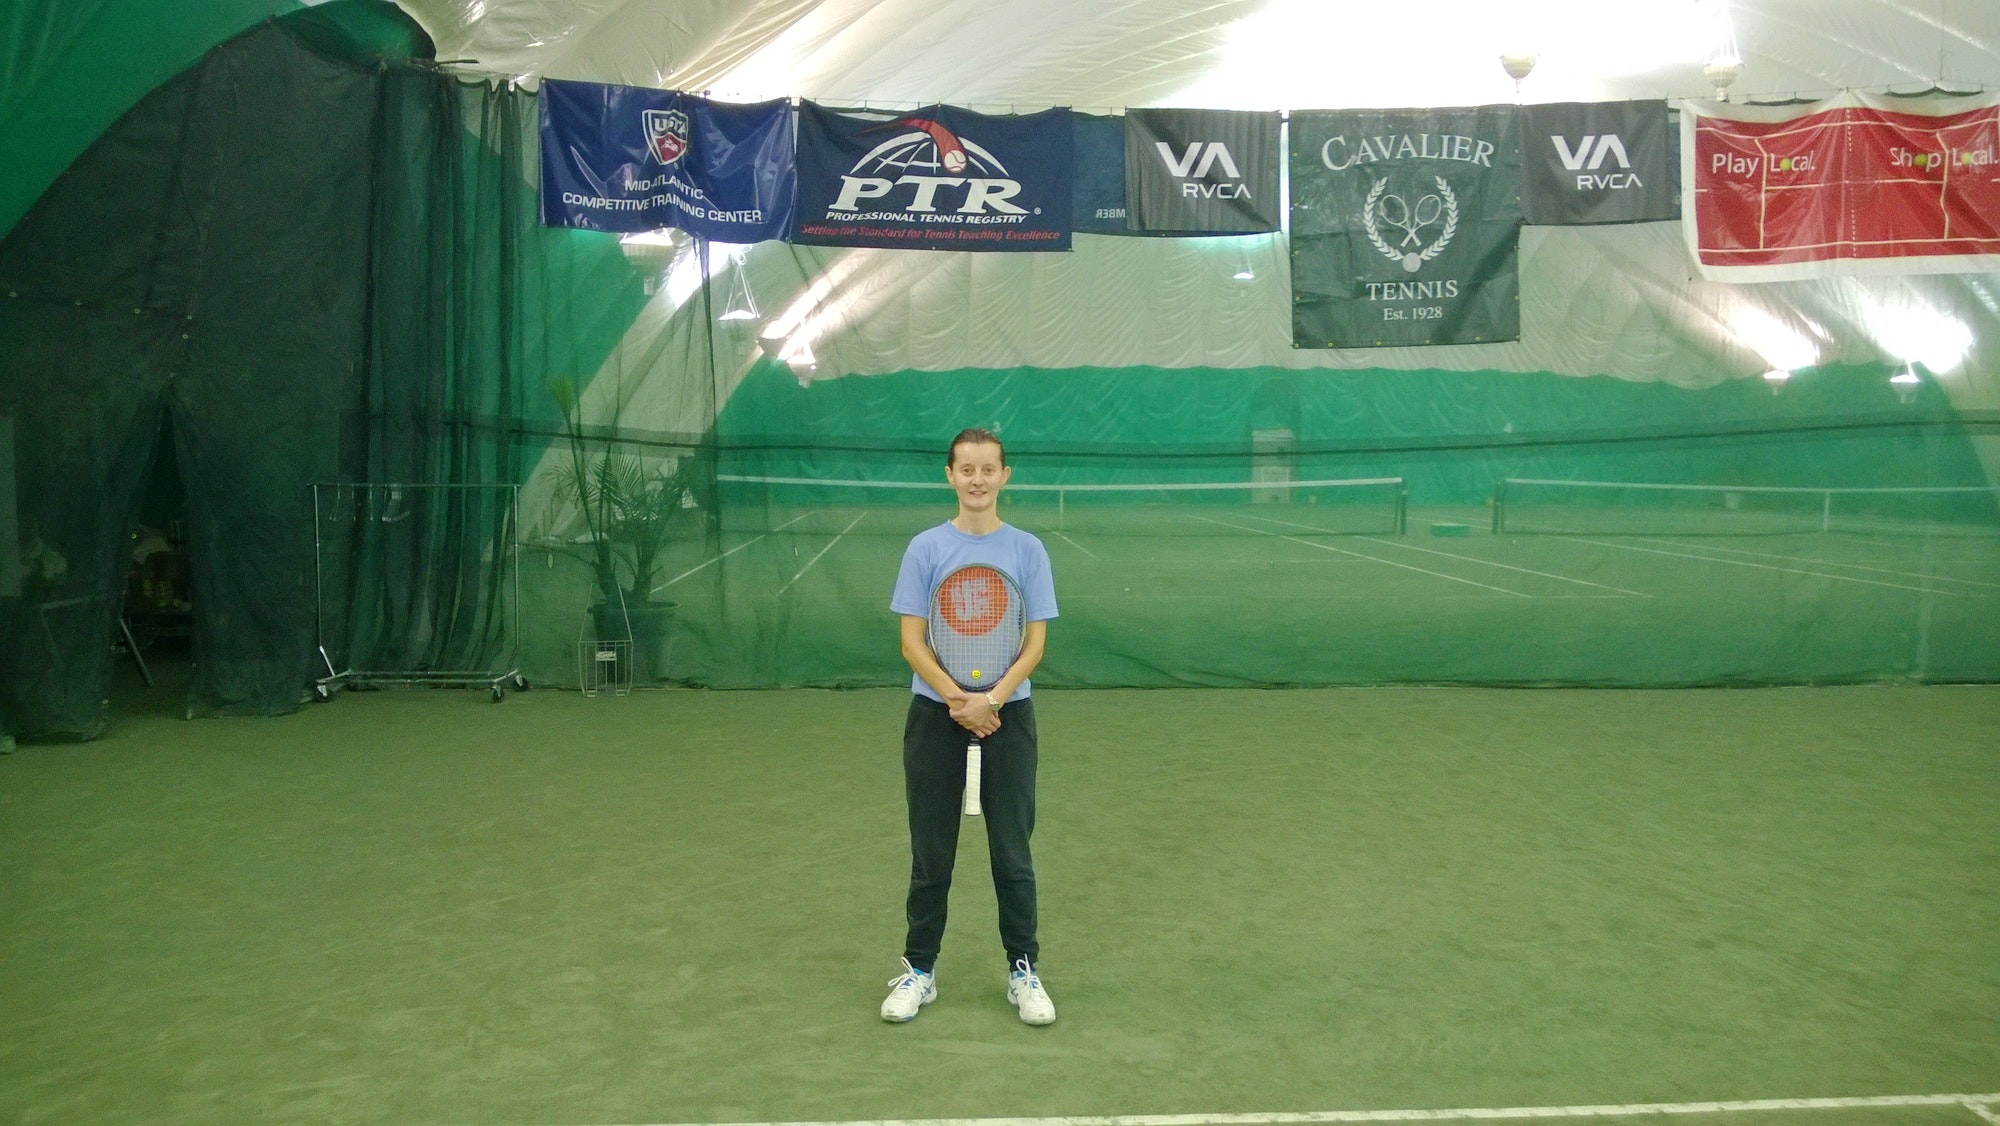 Adriana D. teaches tennis lessons in Woodbridge, VA